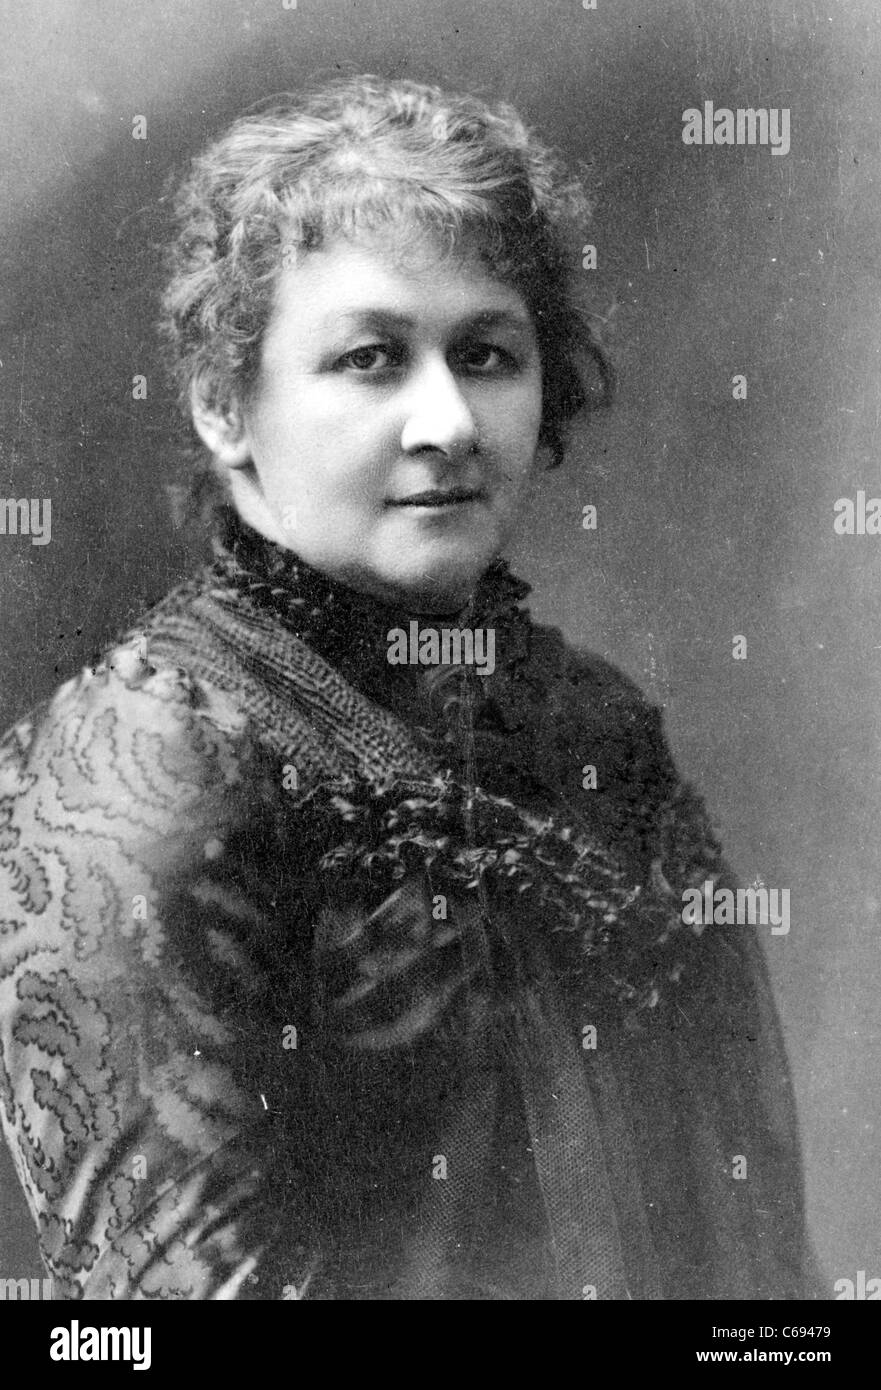 Helen von Forster, born Schmidmer was a German woman's rights activist and writer. - Stock Image